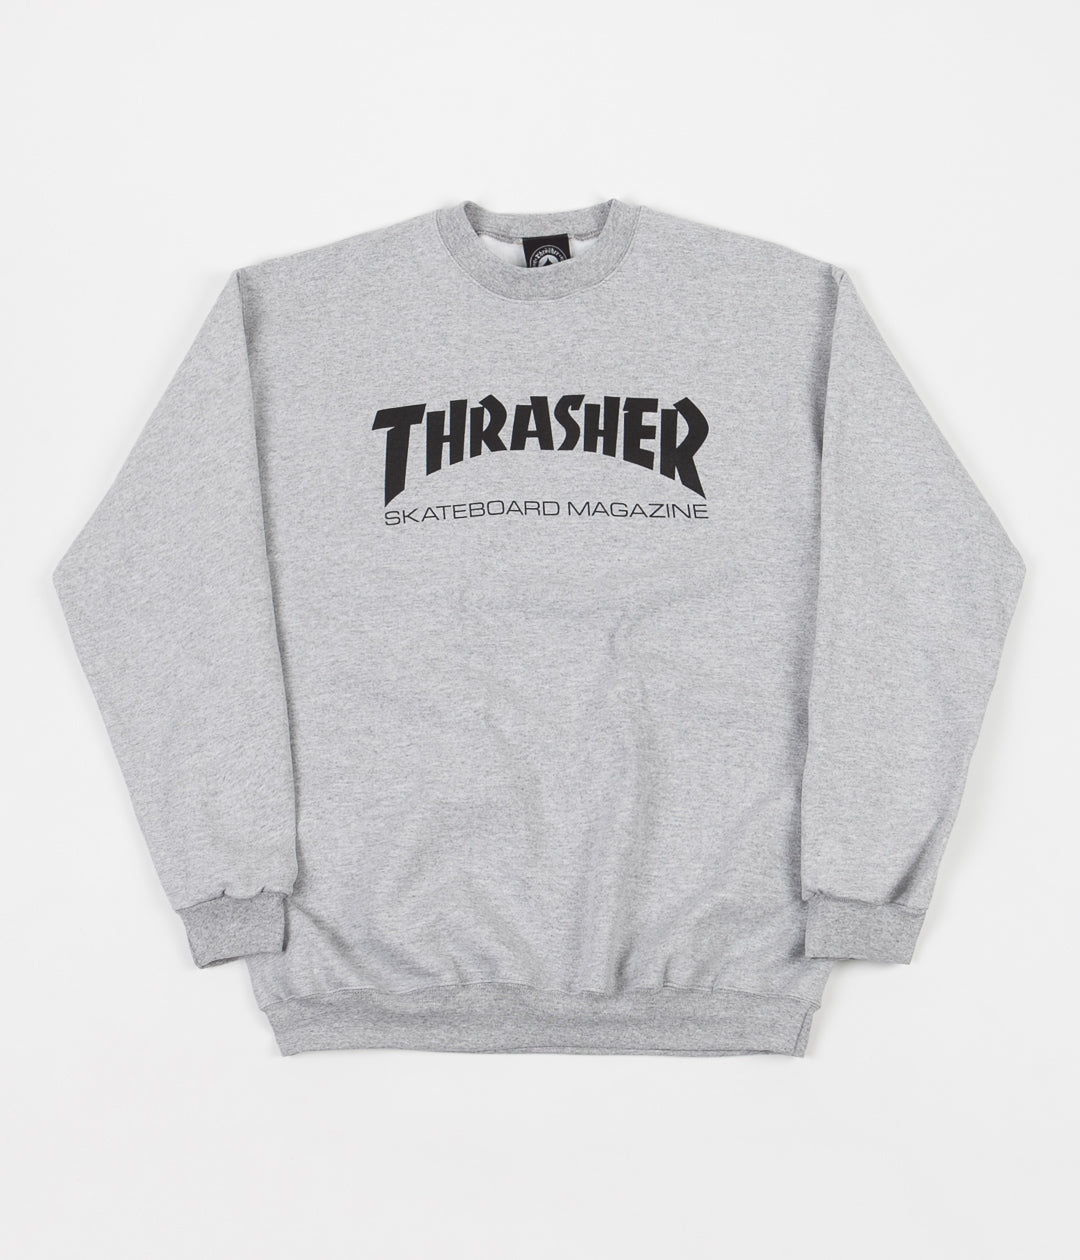 Thrasher Skate Mag Crewneck Sweatshirt - Heather Grey